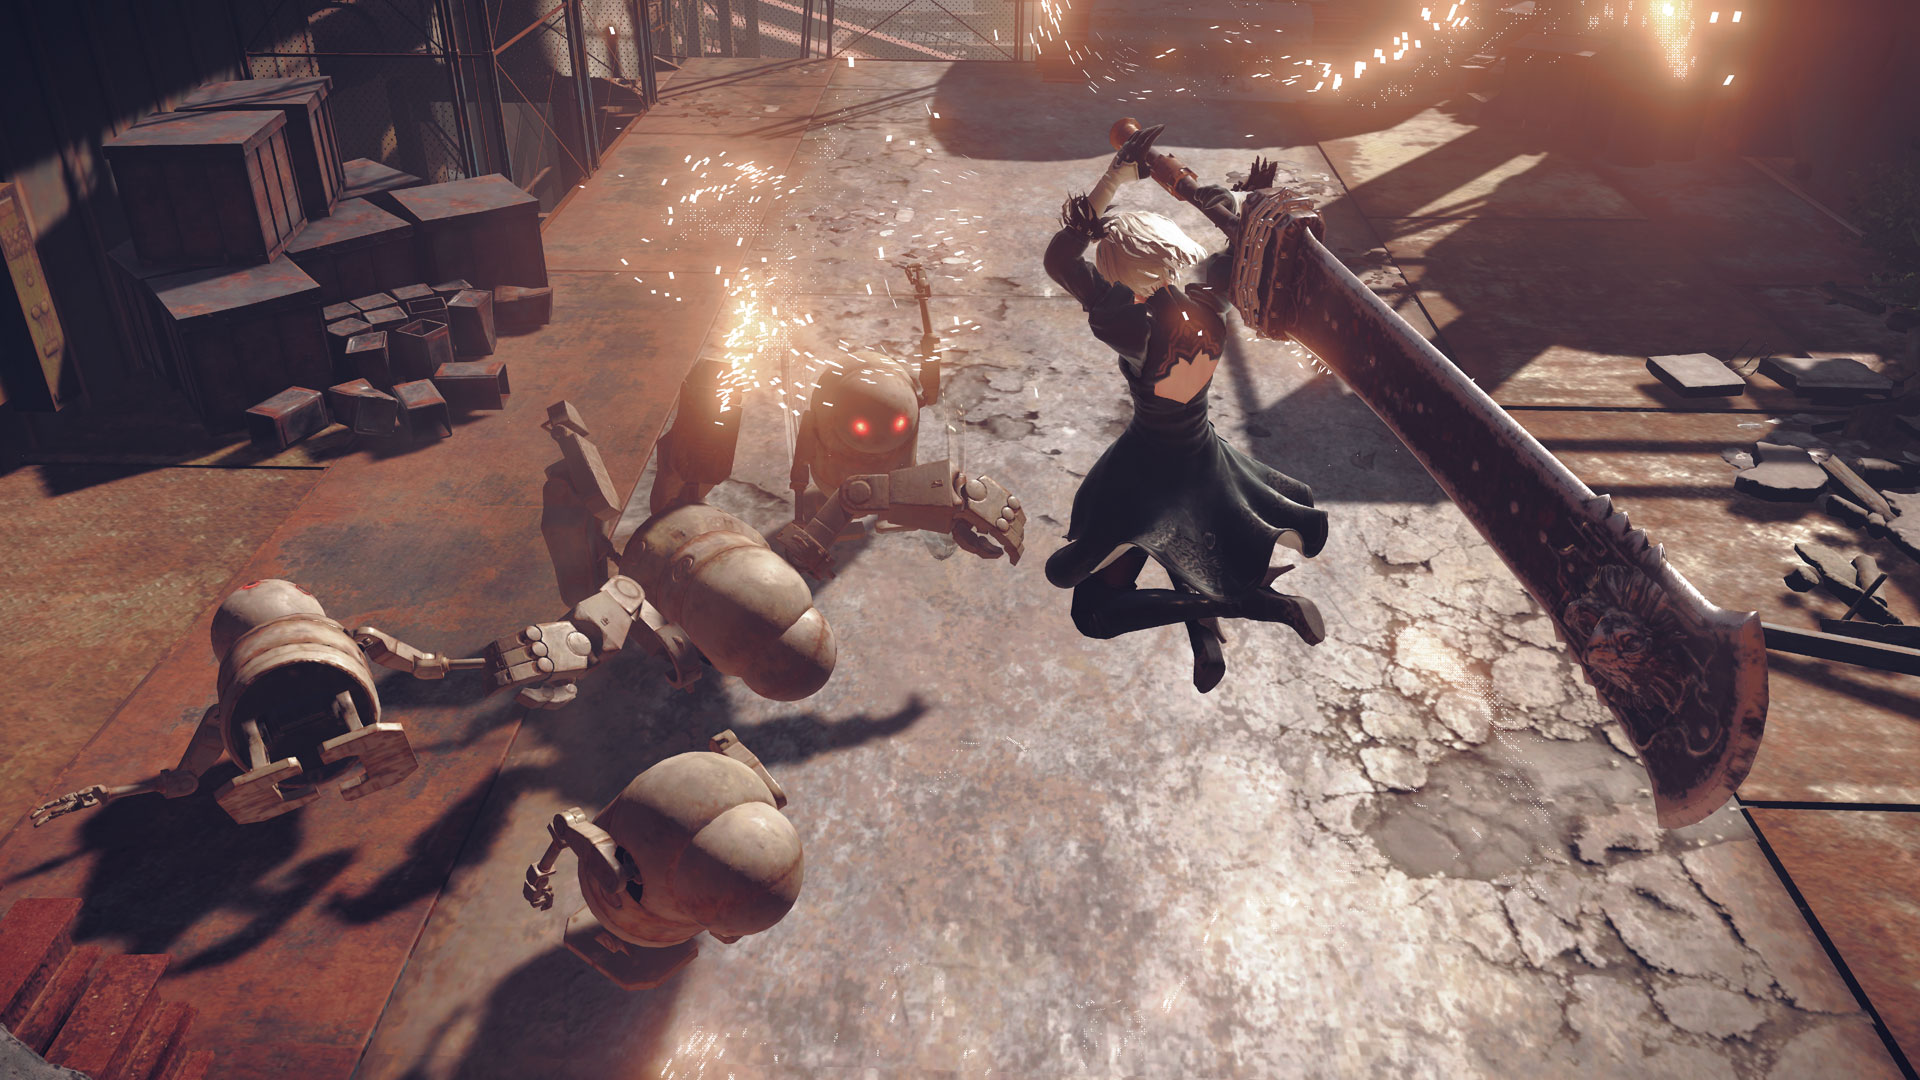 Nier: Automata sells over 2 million units